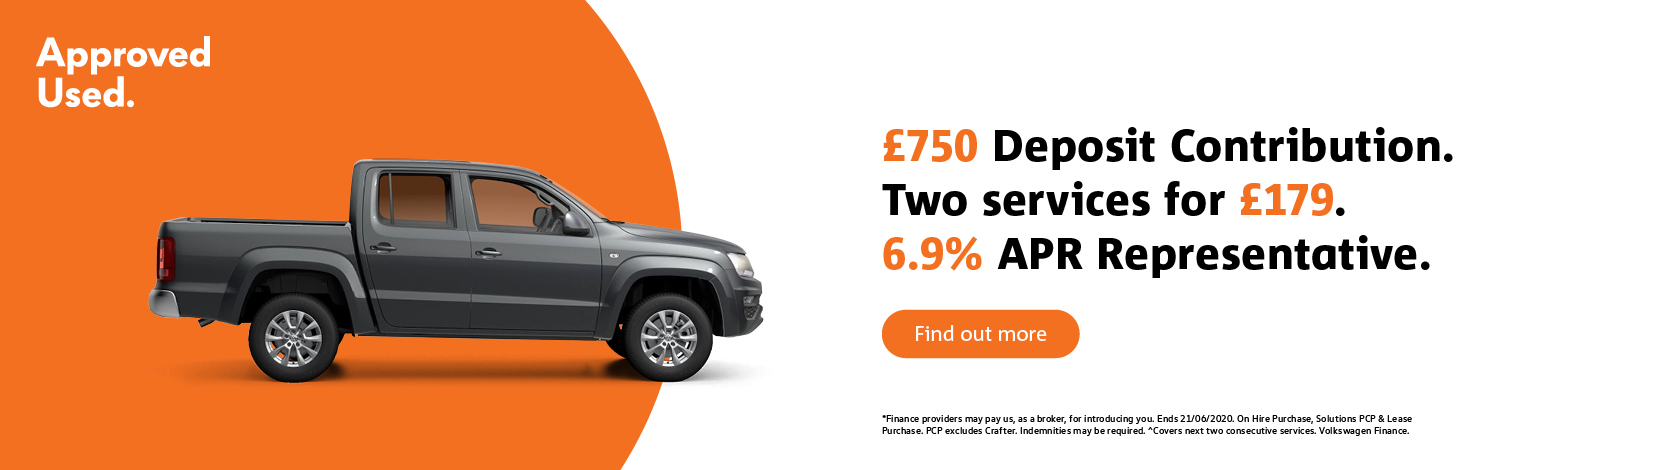 Approved Used Amarok Offer